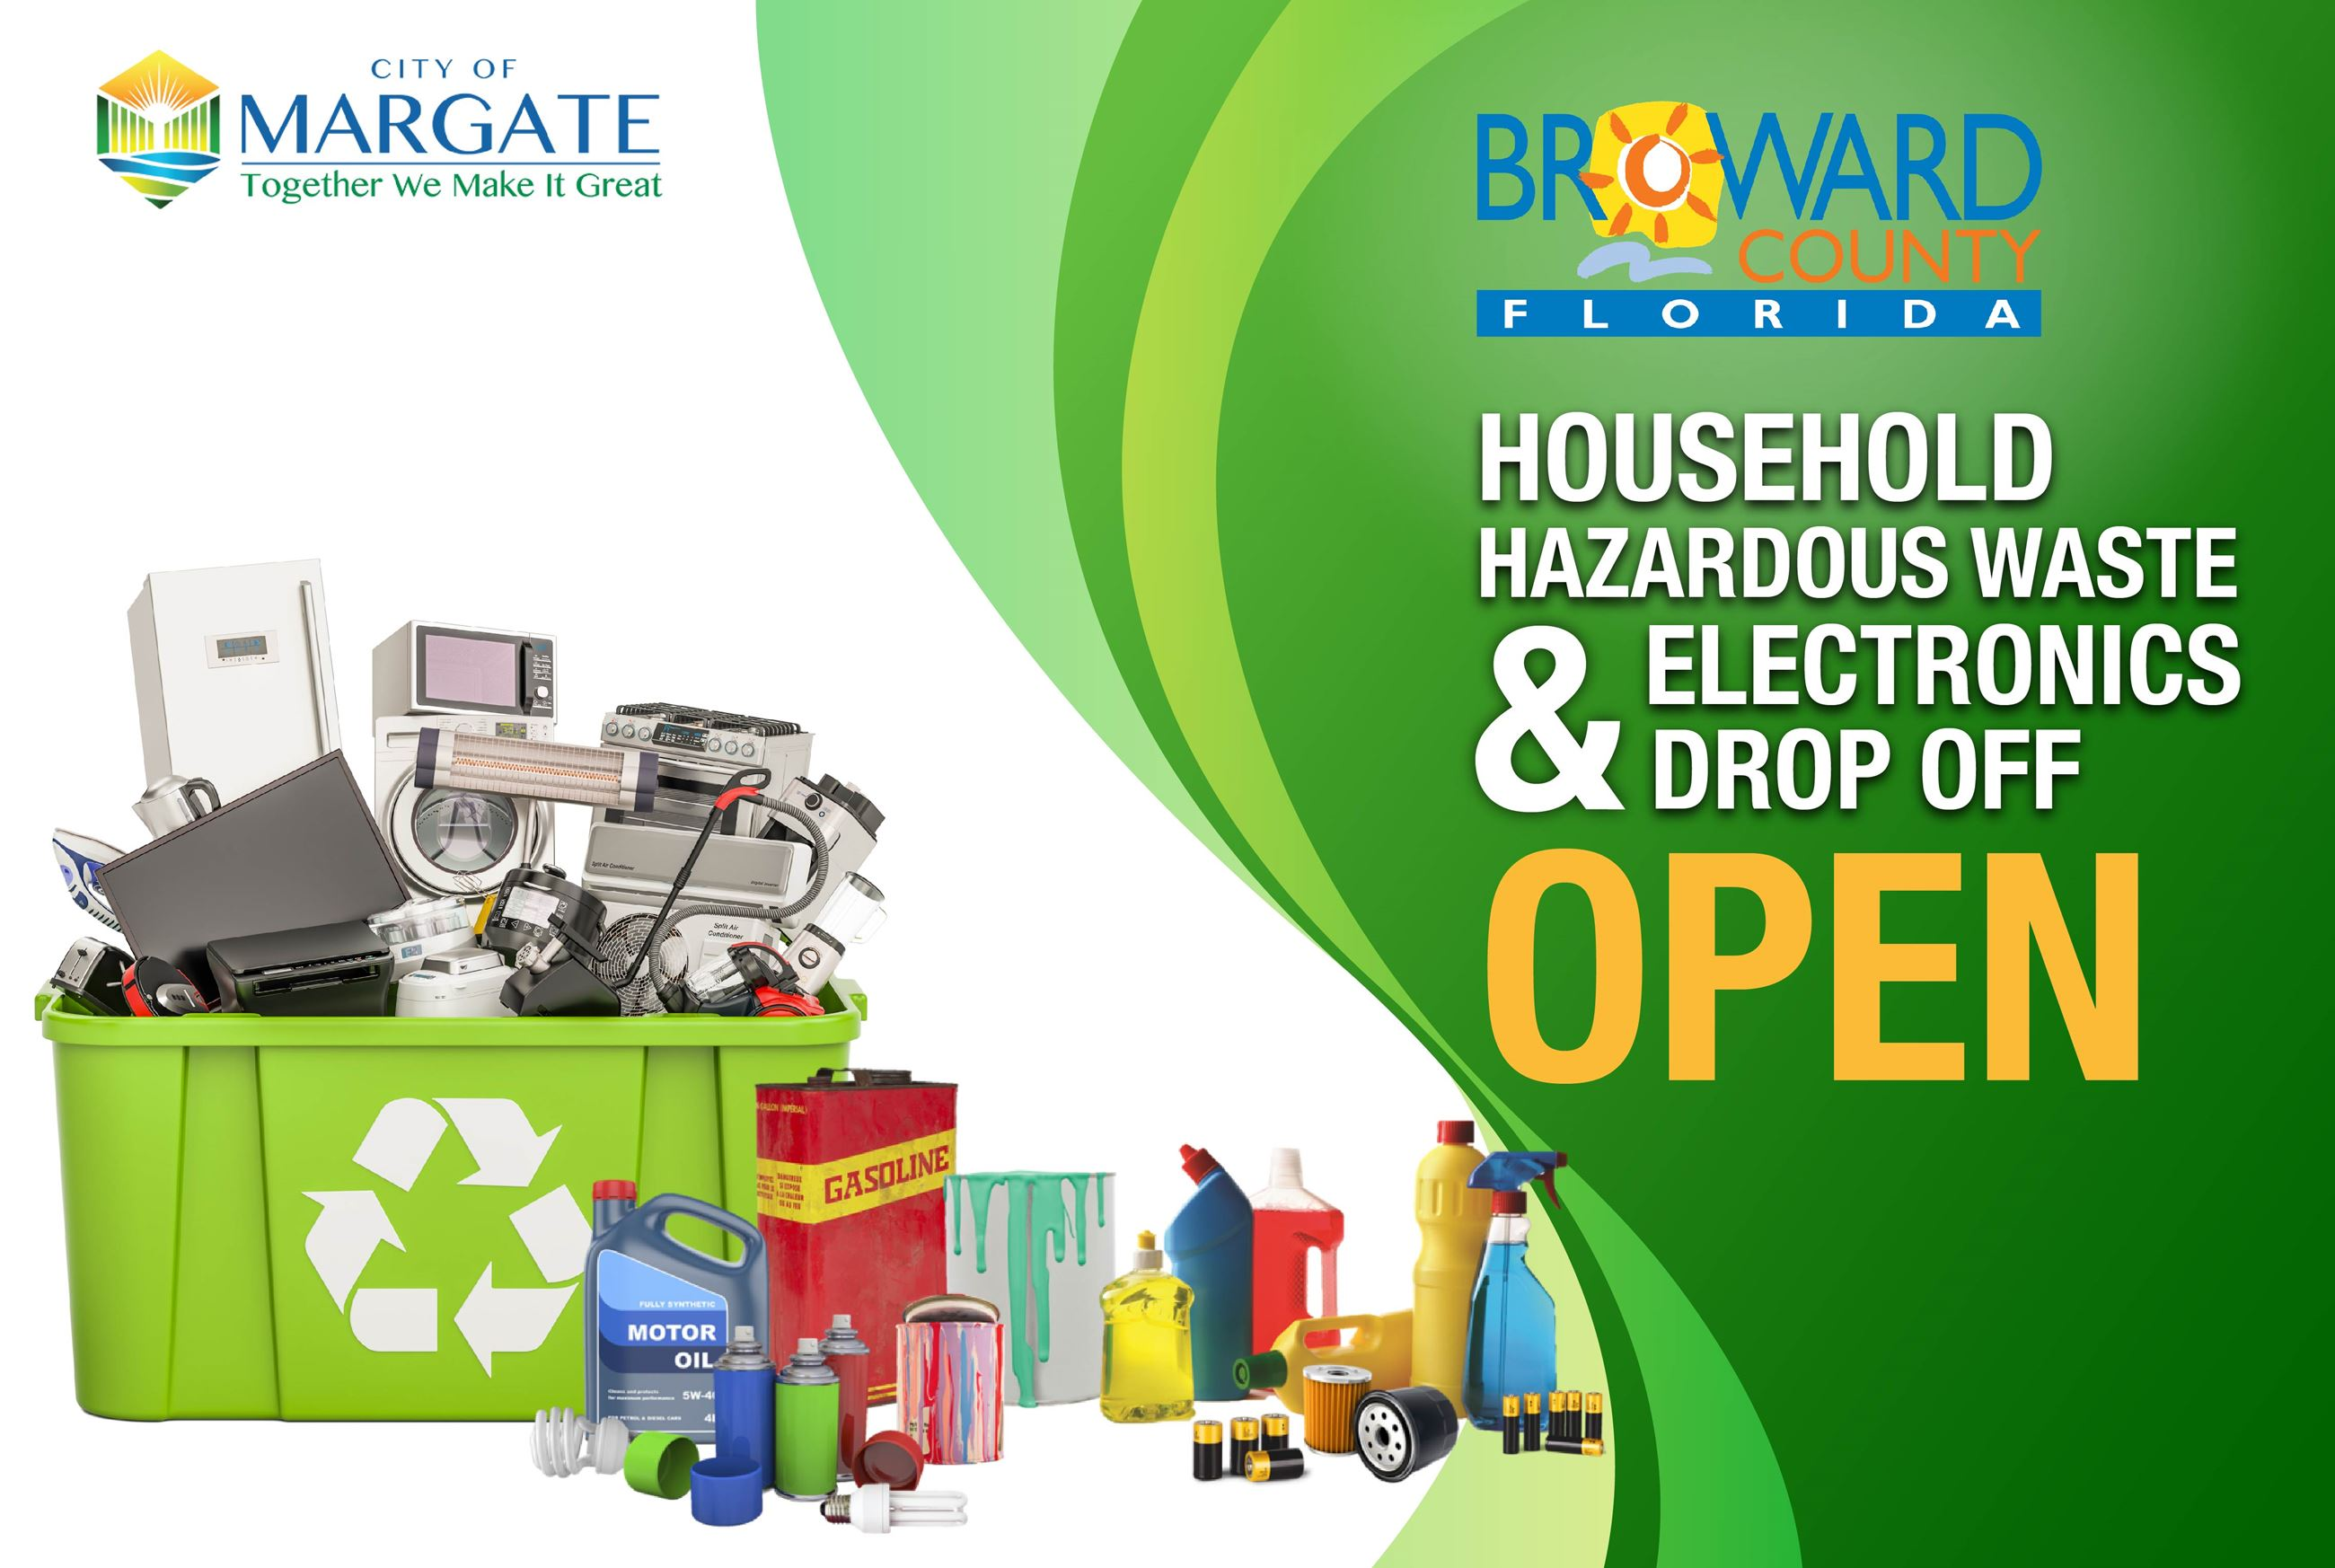 Household Hazardous Waste Electronics